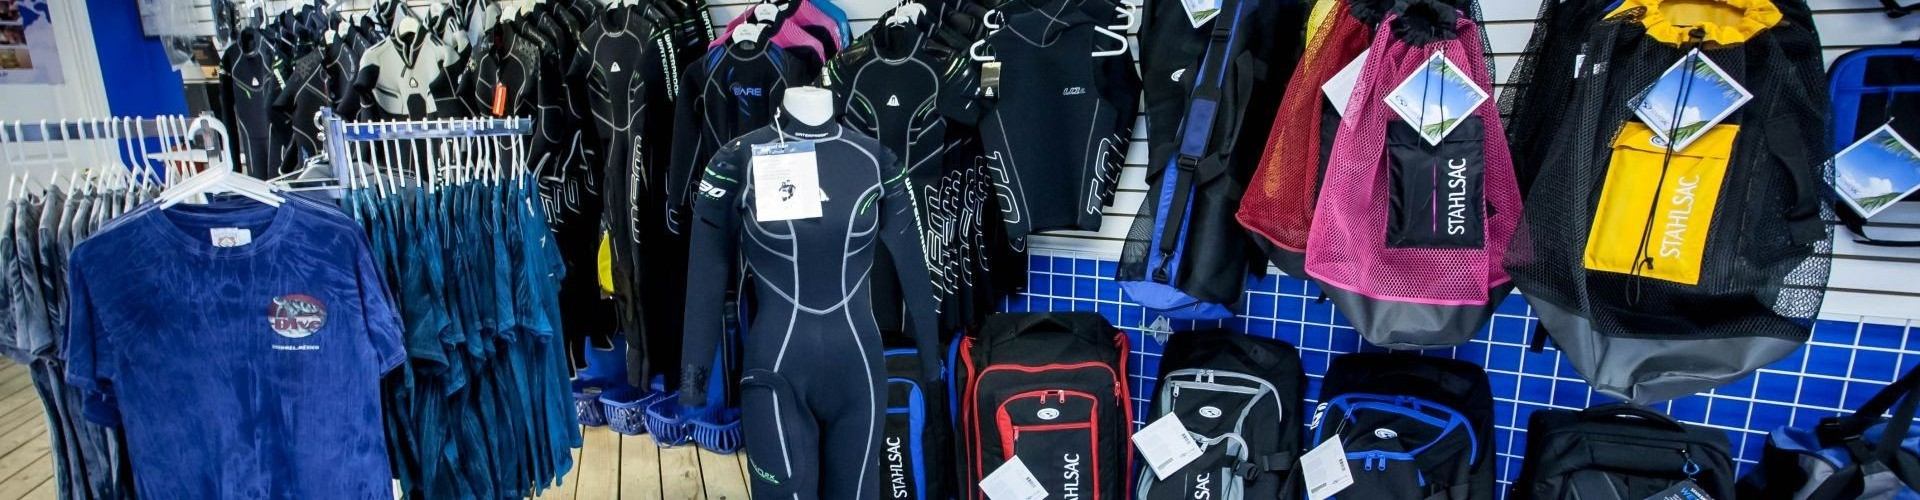 3 - Sugar Land Dive Center Bags and Wetsuits